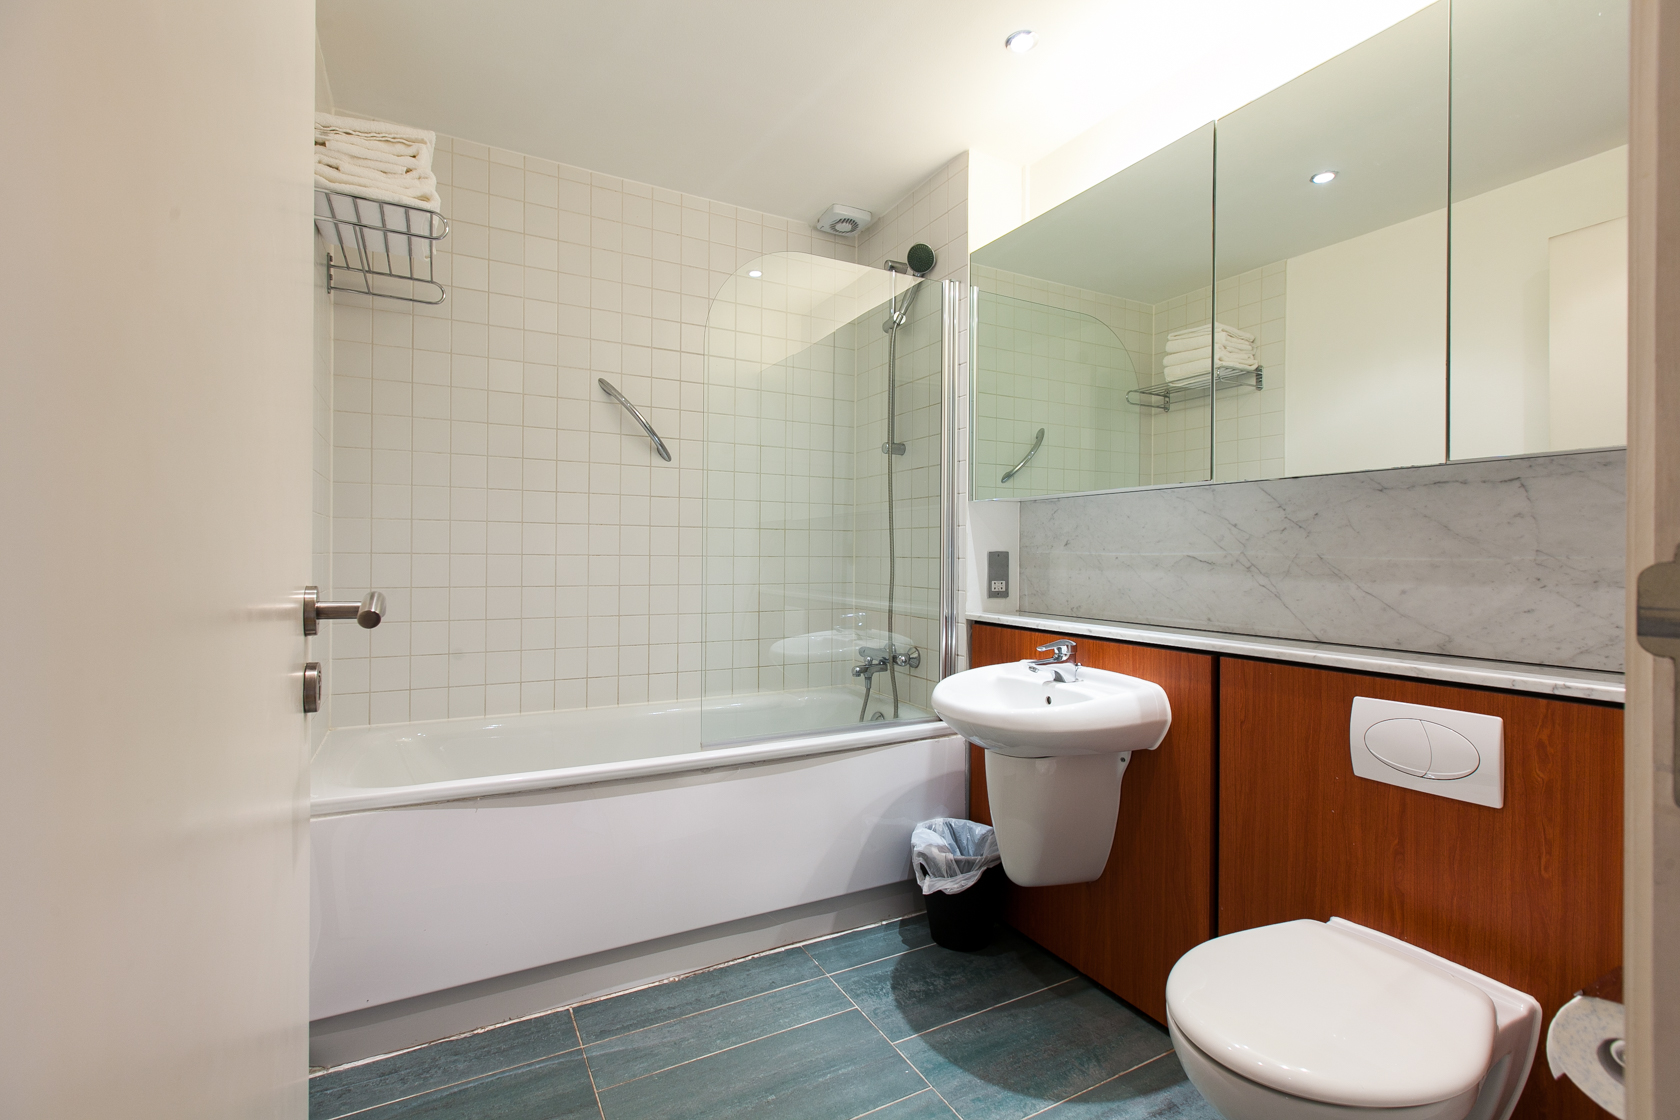 Bathroom at The Forum Sandyford Apartment, Sandyford, Dublin - Citybase Apartments